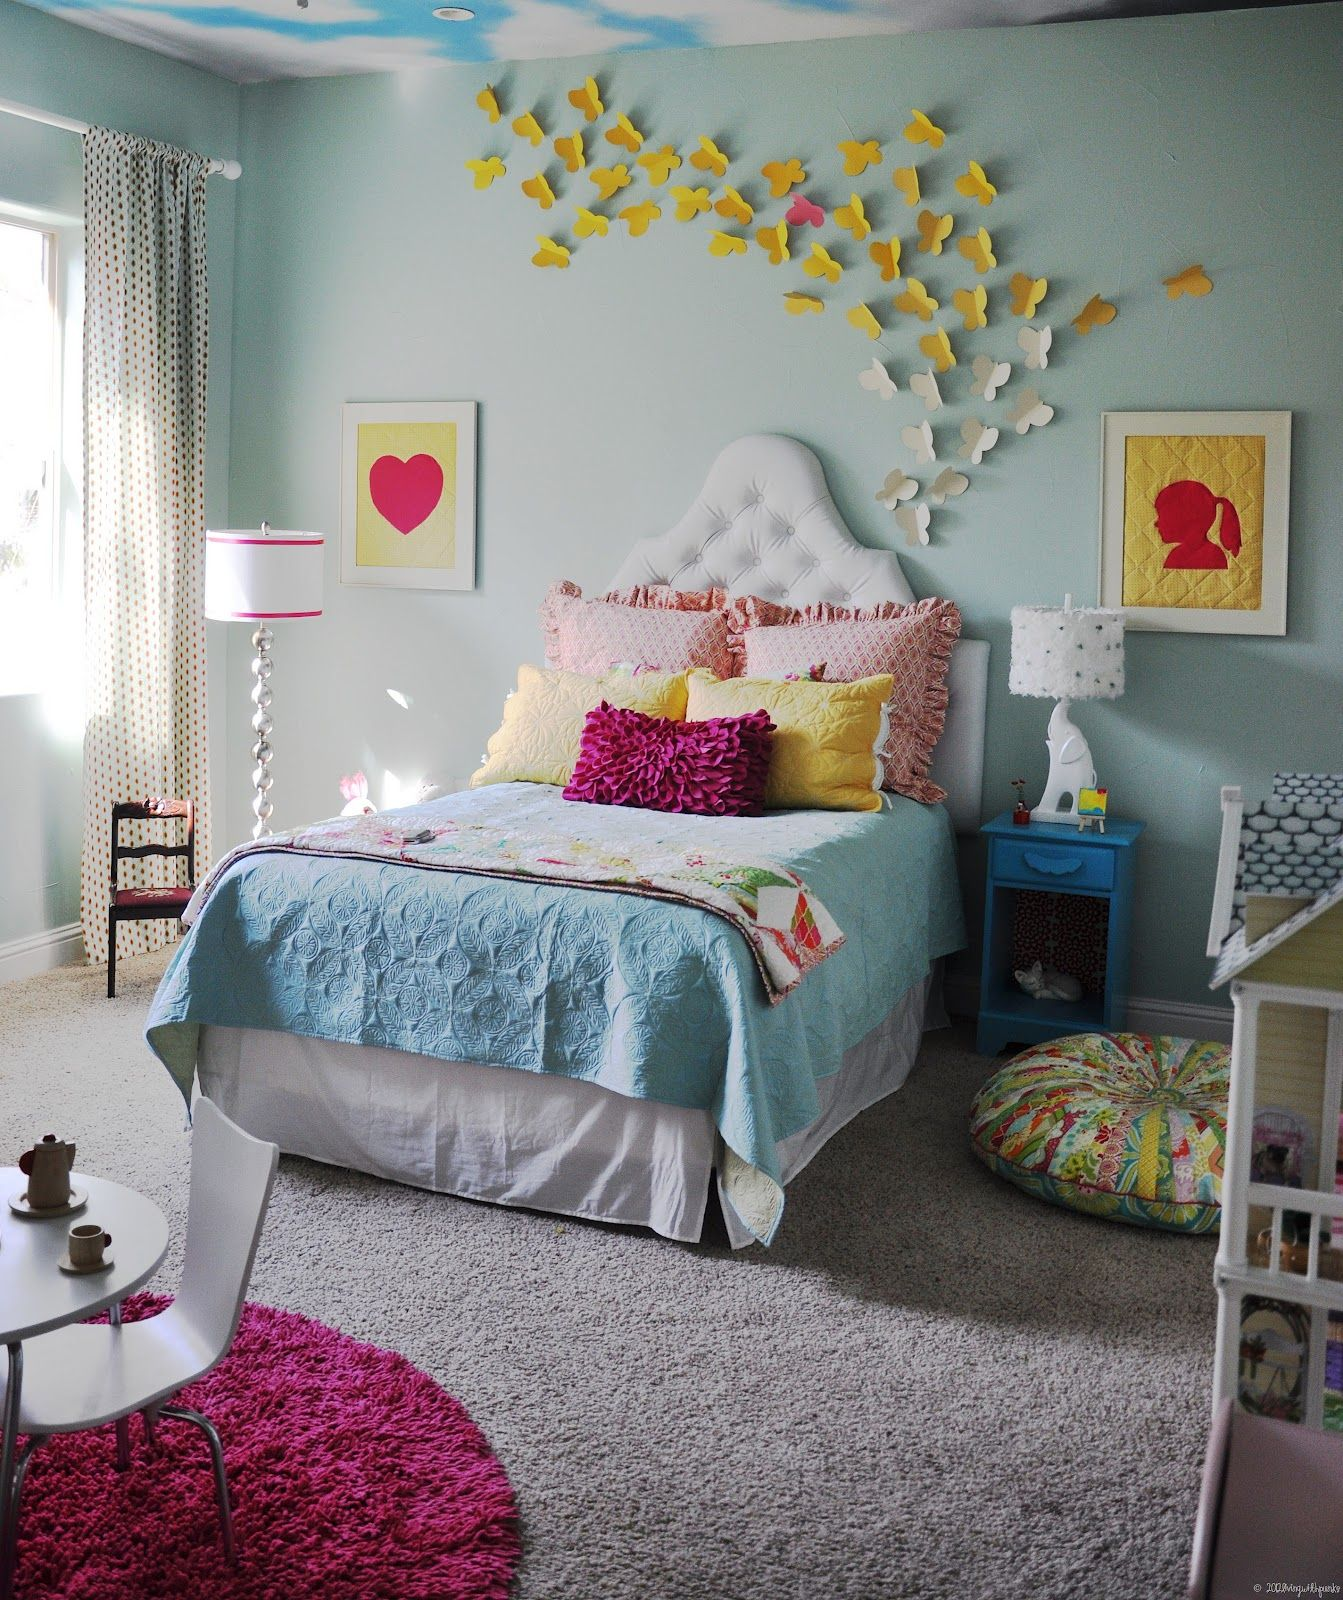 Little girls 39 room love pictures on wall lamps and name - Habitaciones para ninos pequenos ...